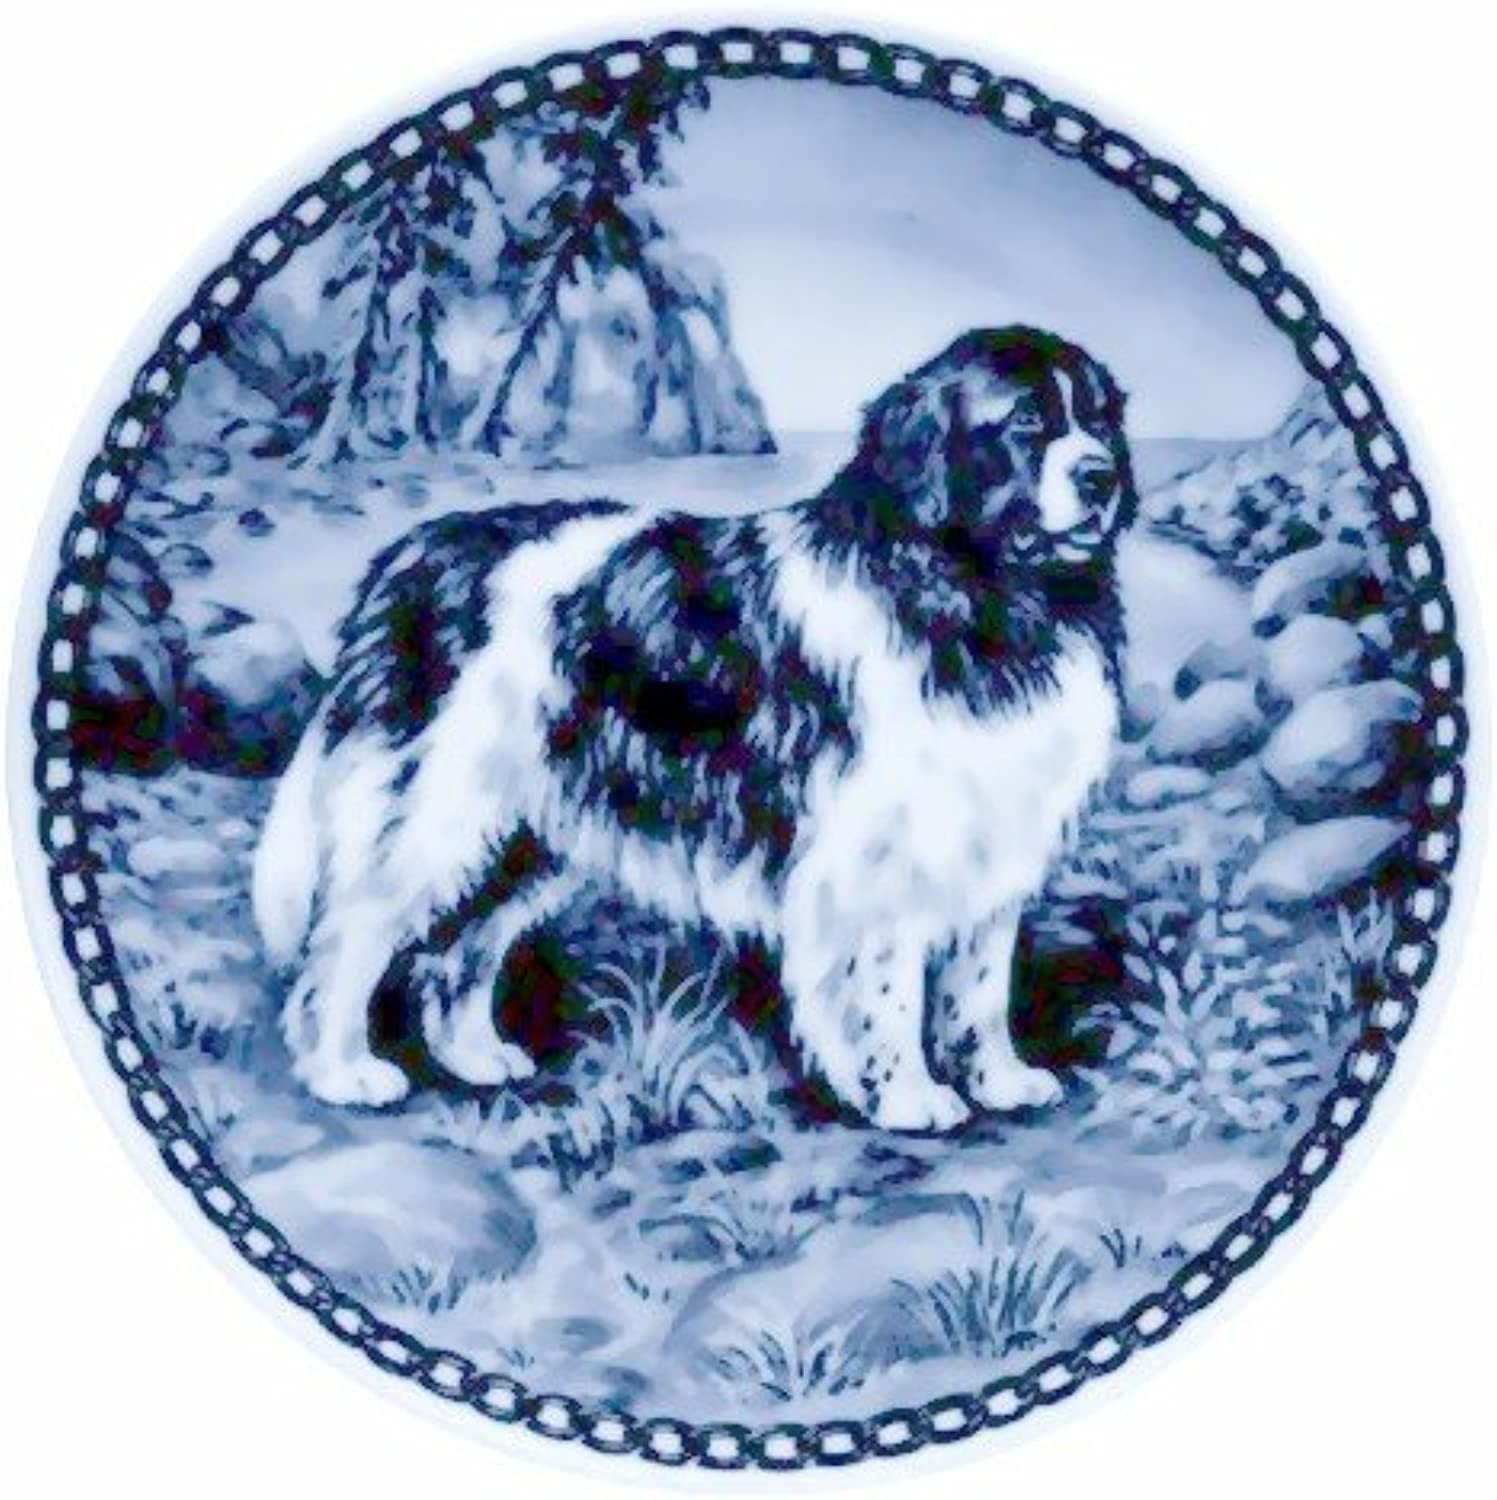 Lekven Newfoundland  Landseer Design Dog Plate 19.5 cm  7.61 inches Made in Denmark NEW with certificate of origin PLATE  7171